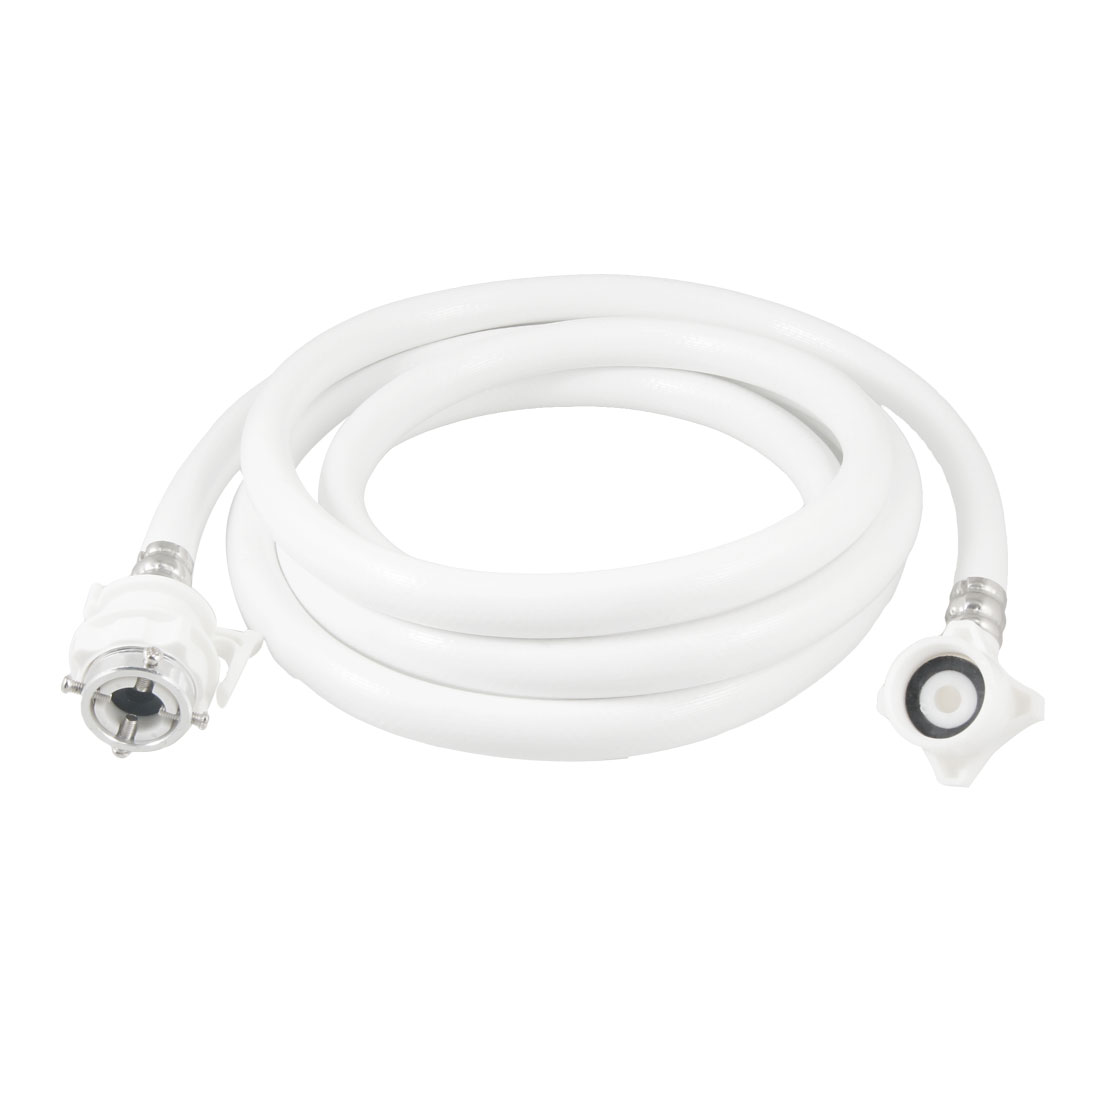 Automatic 3 Meter Length Flexible Inlet Hose Tube White for Washing Machine